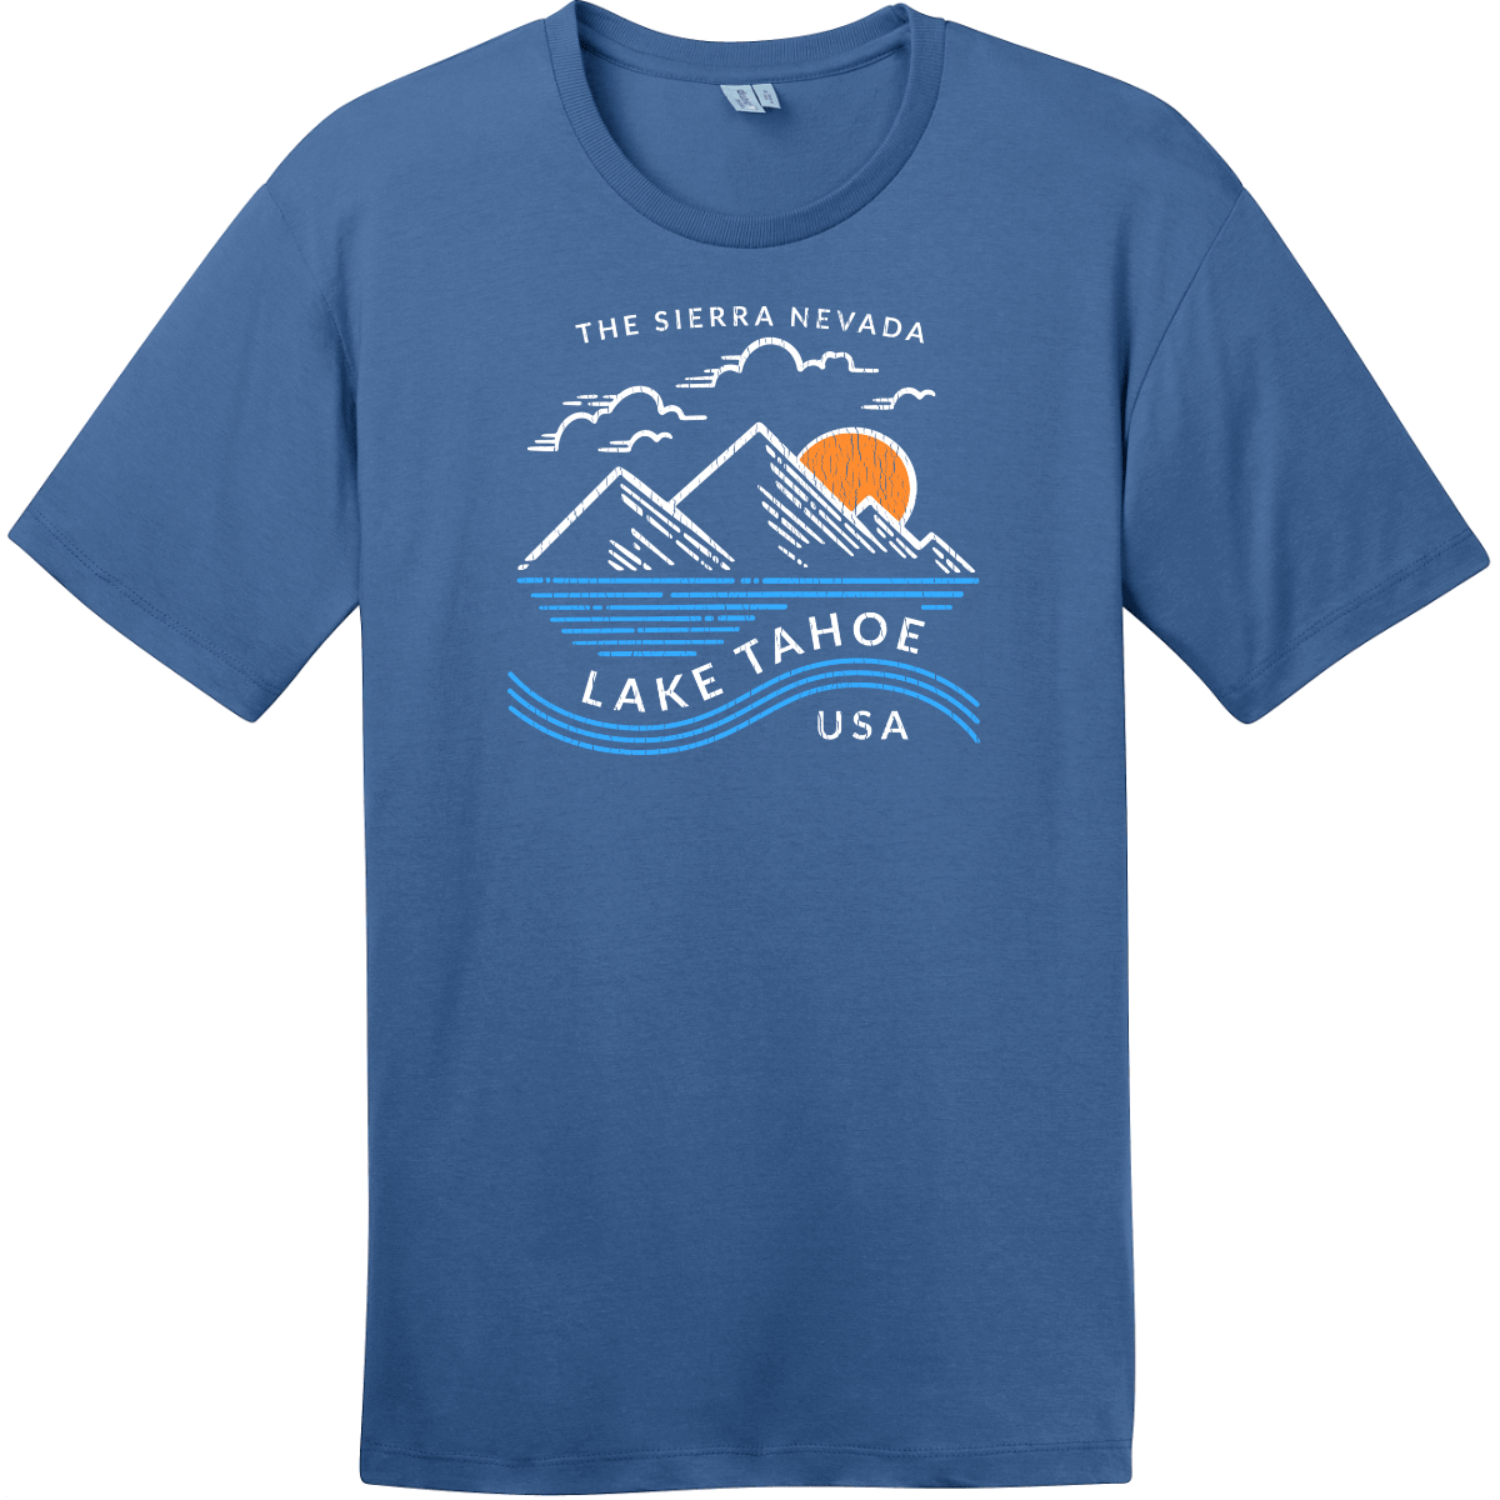 Lake Tahoe Sierra Nevada Mountain T-Shirt Maritime Blue District Perfect Weight Tee DT104